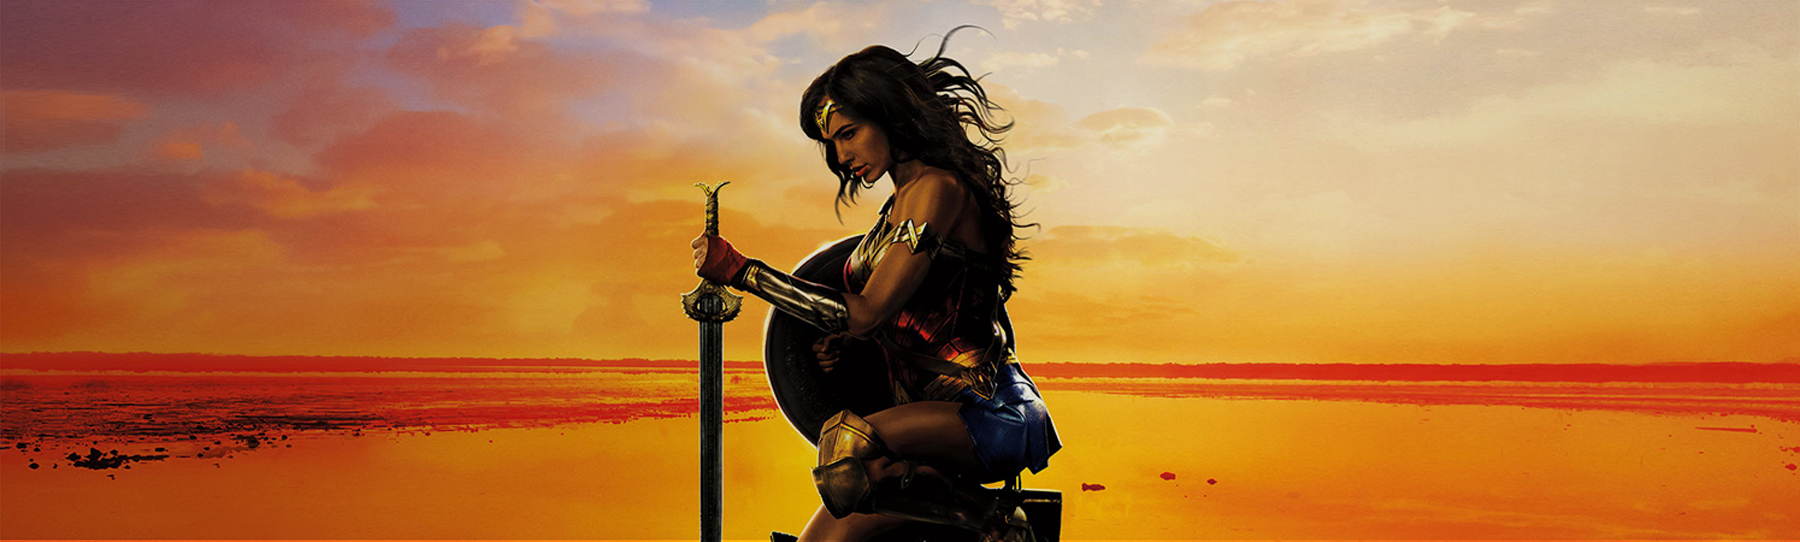 Pre-order Wonder Woman and get a free game add-on